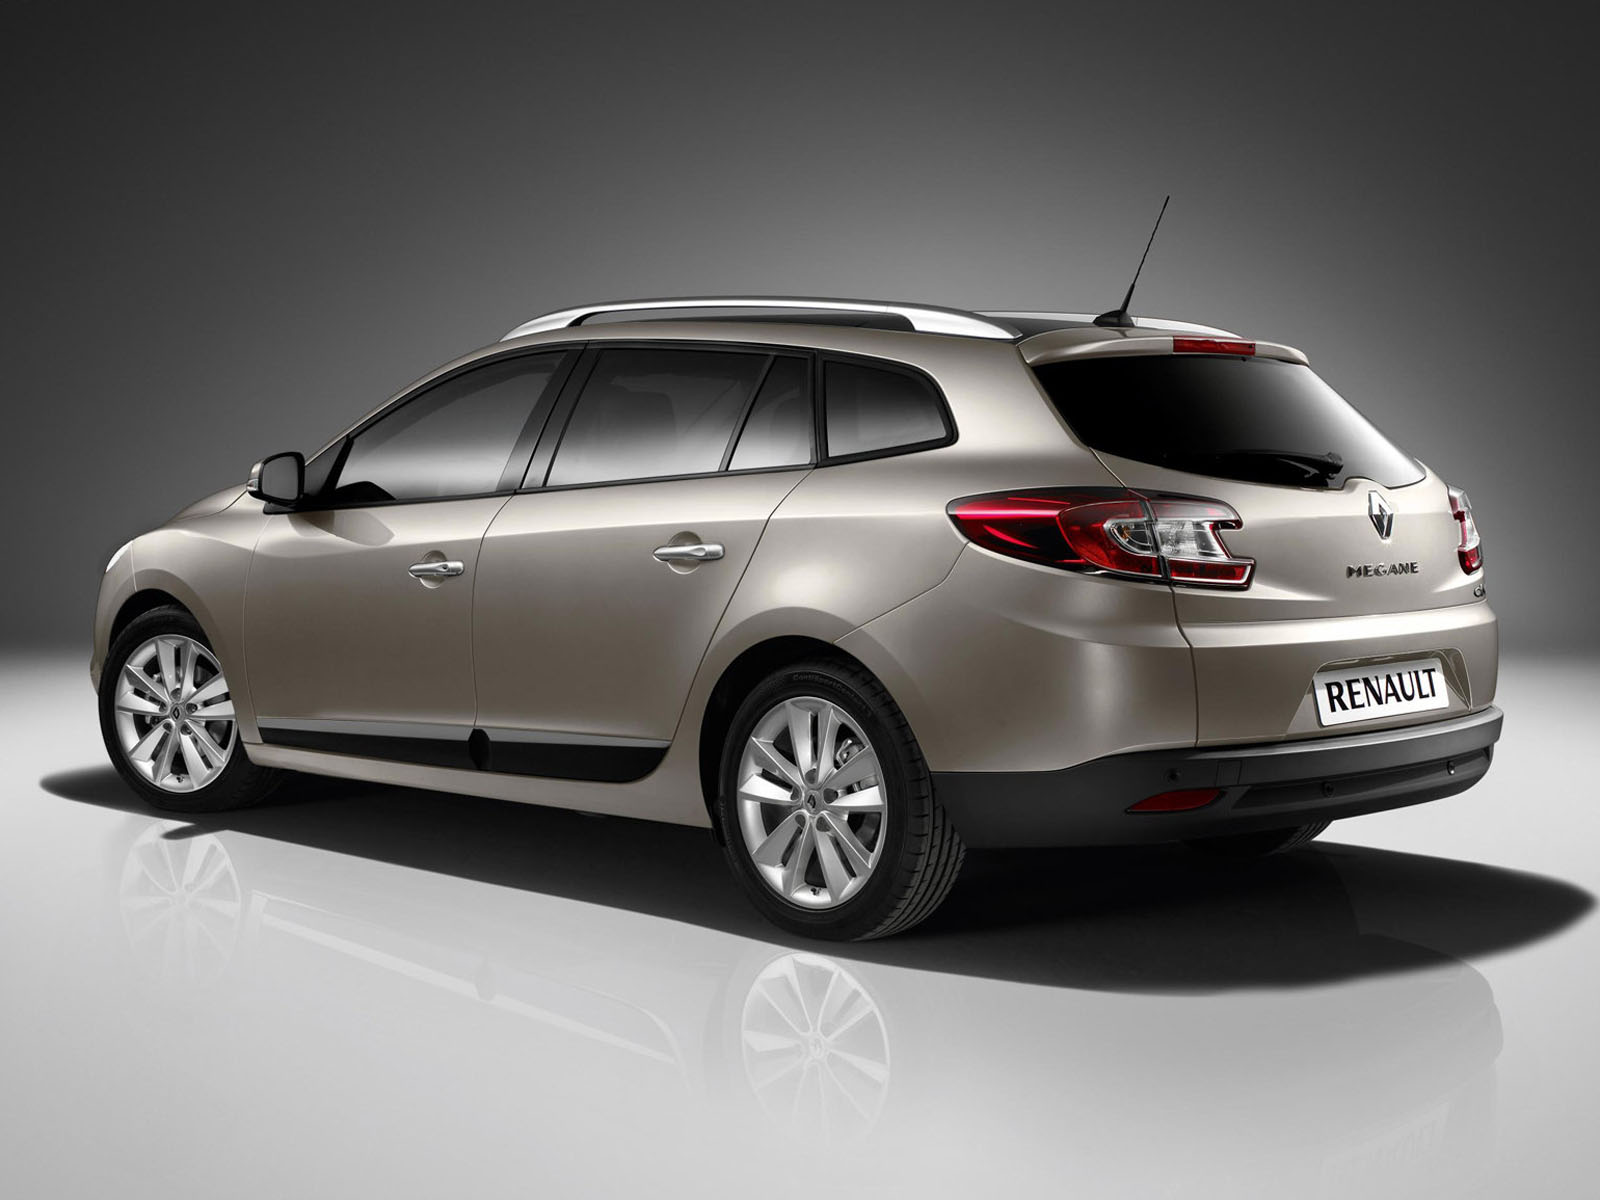 renault megane iii estate 2012 wallpaper